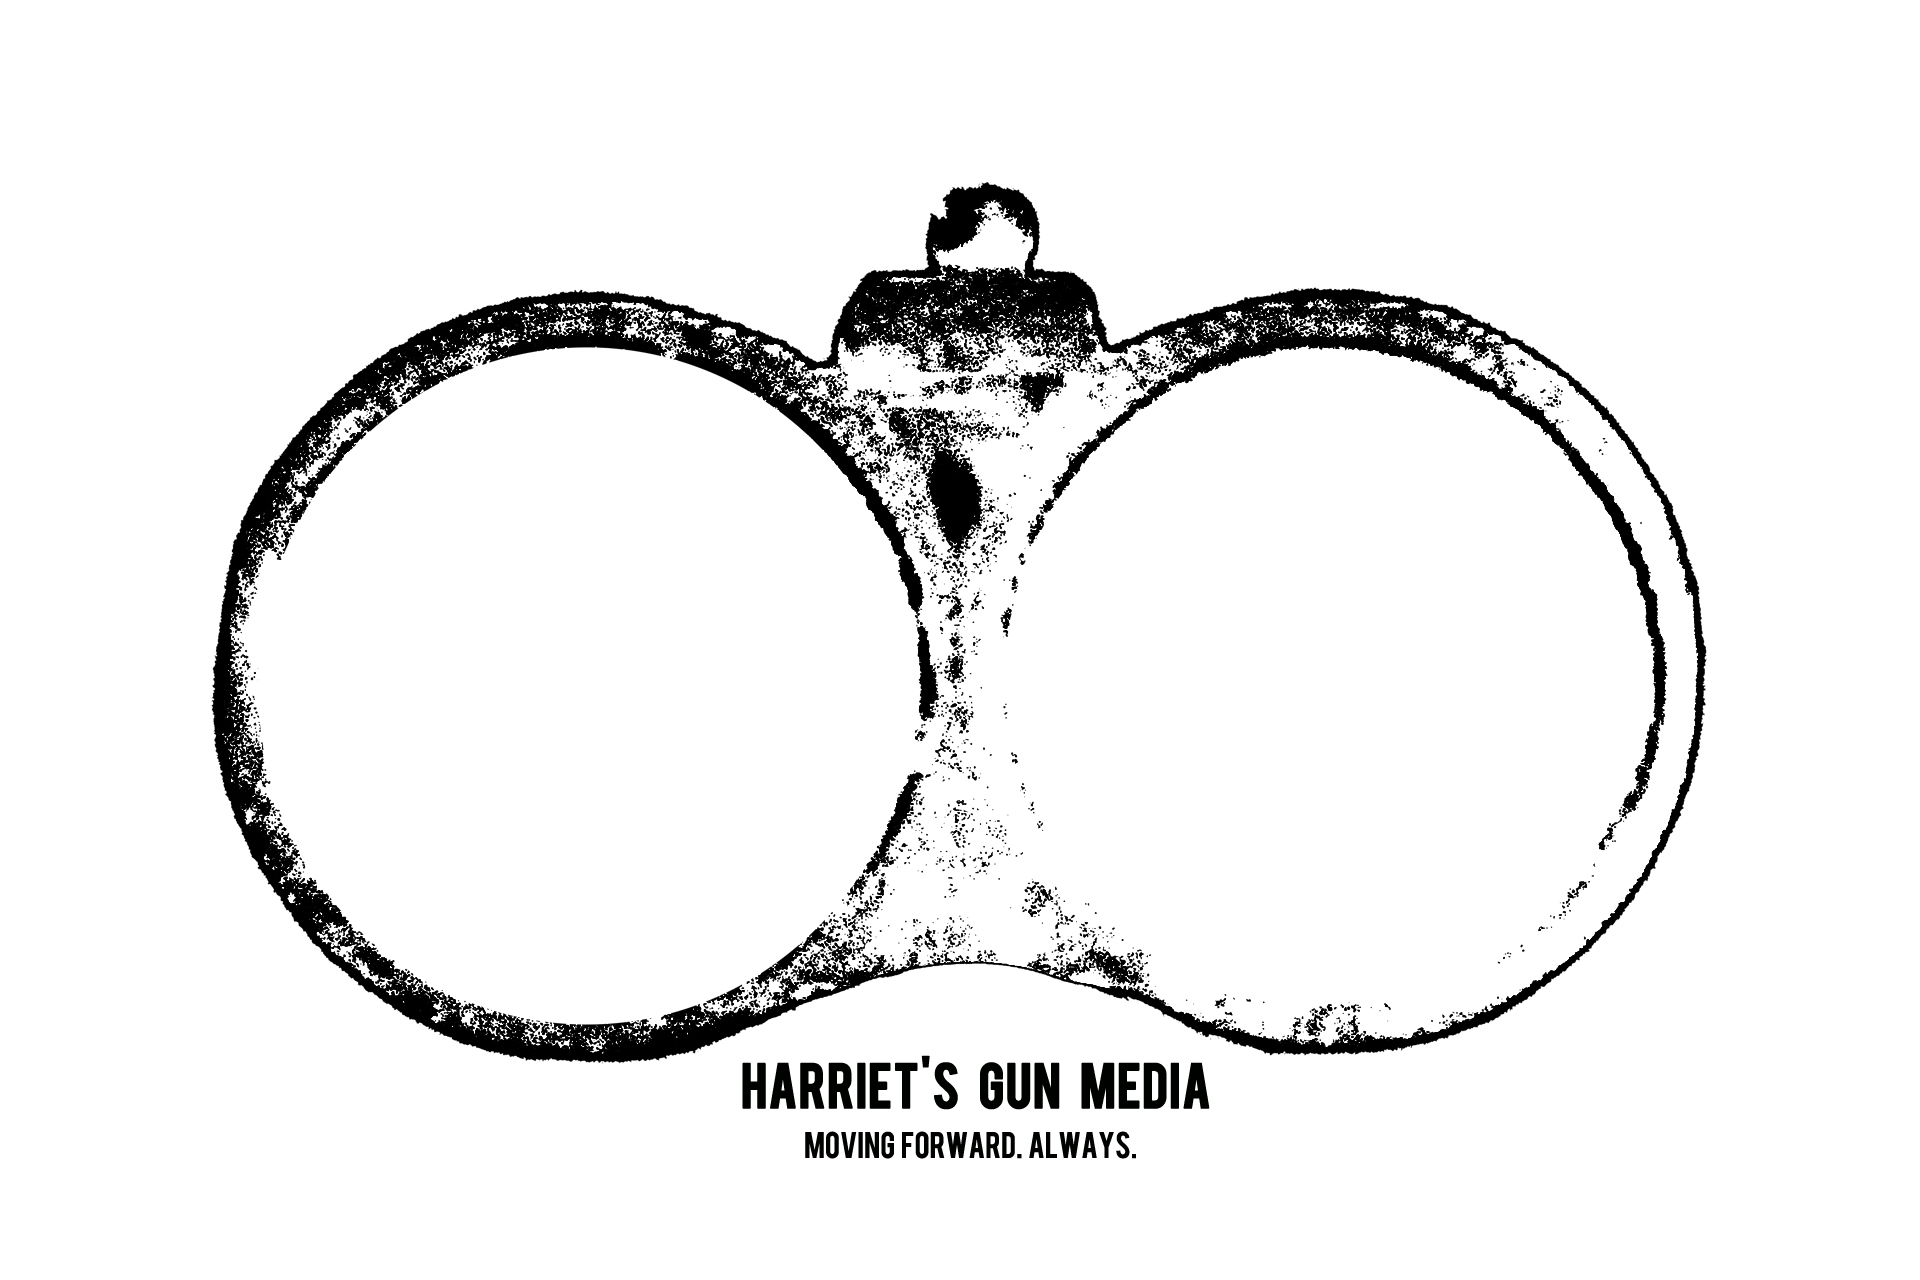 Harriet's Gun Media